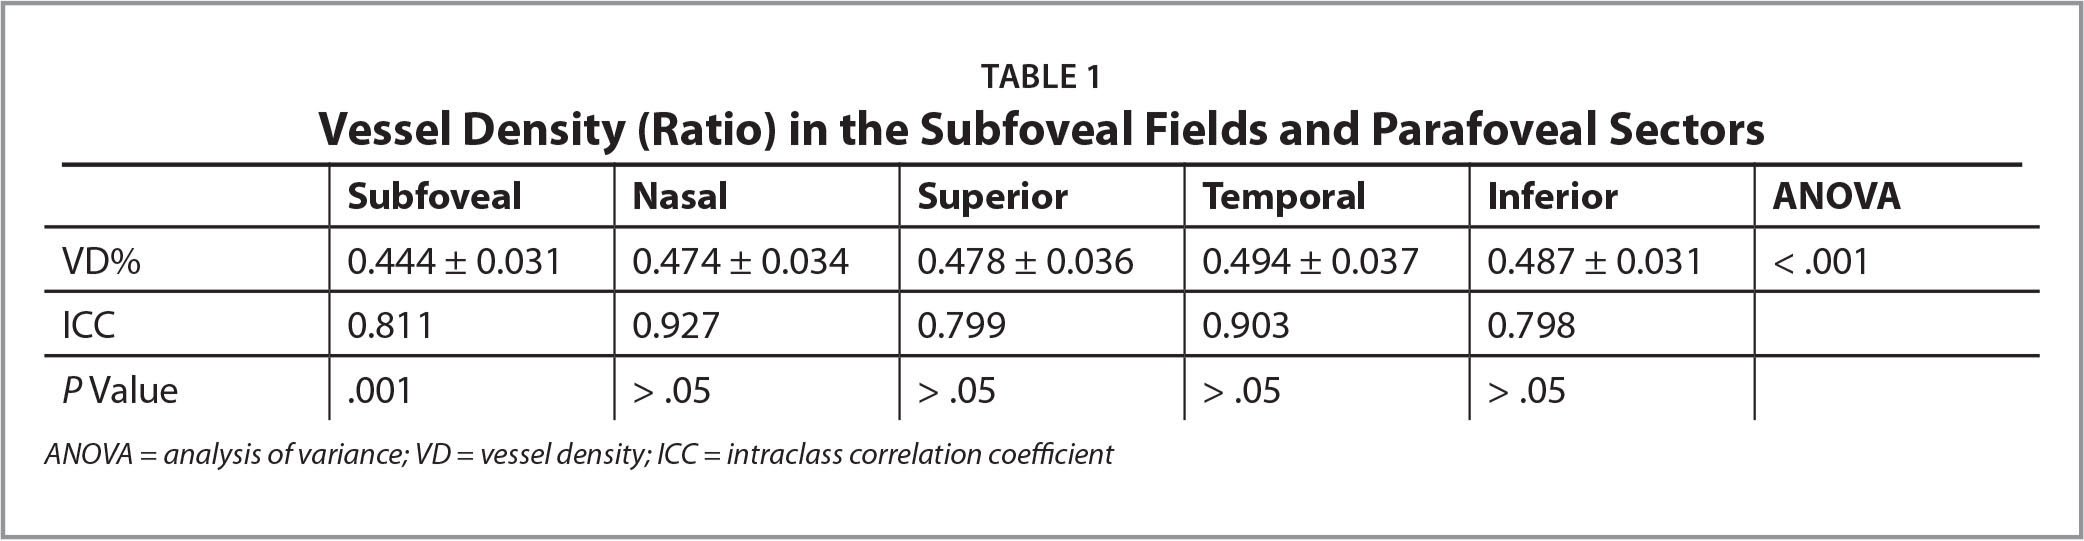 Vessel Density (Ratio) in the Subfoveal Fields and Parafoveal Sectors